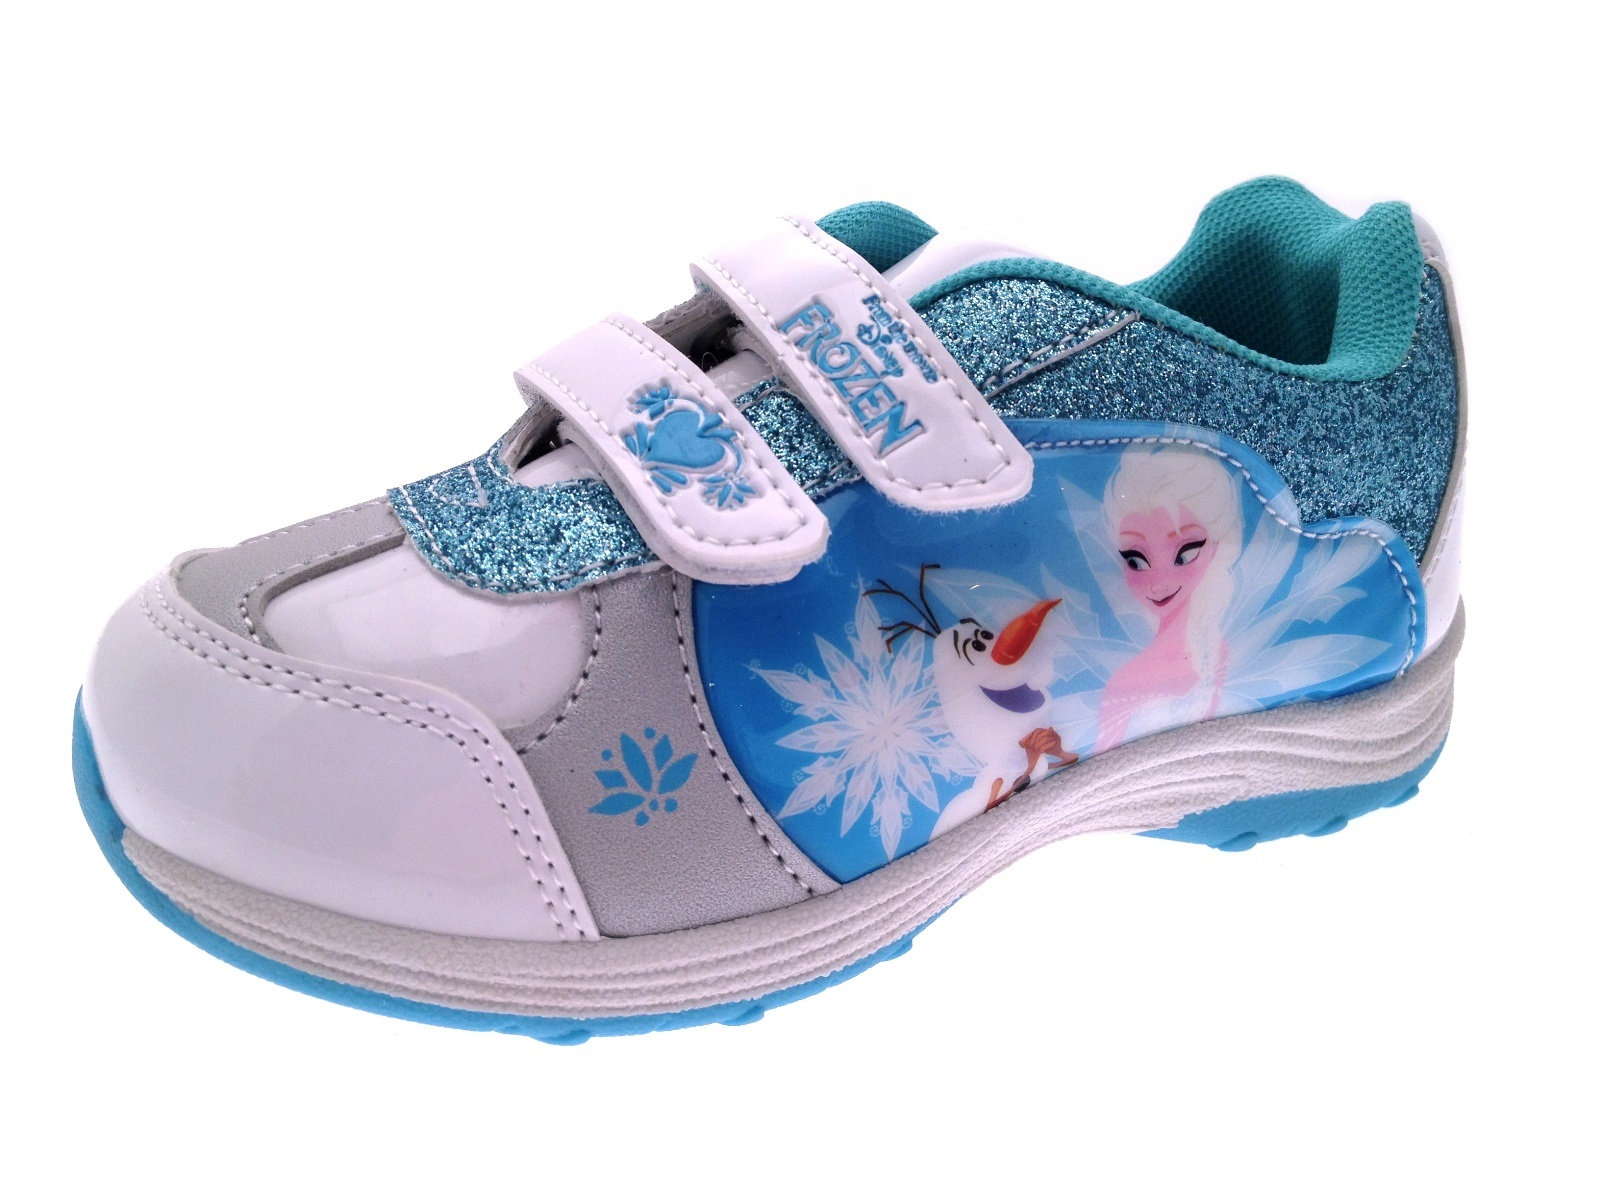 Disney Frozen Shoes for Girls. Clothing. Shoes. Kids & Baby Shoes. Disney Frozen Shoes for Girls. Showing 48 of results that match your query. Search Product Result. Product - Kids New Balance Girls Yvm2 Disney Low Top Walking Shoes. Product Image. Price $ Product Title.